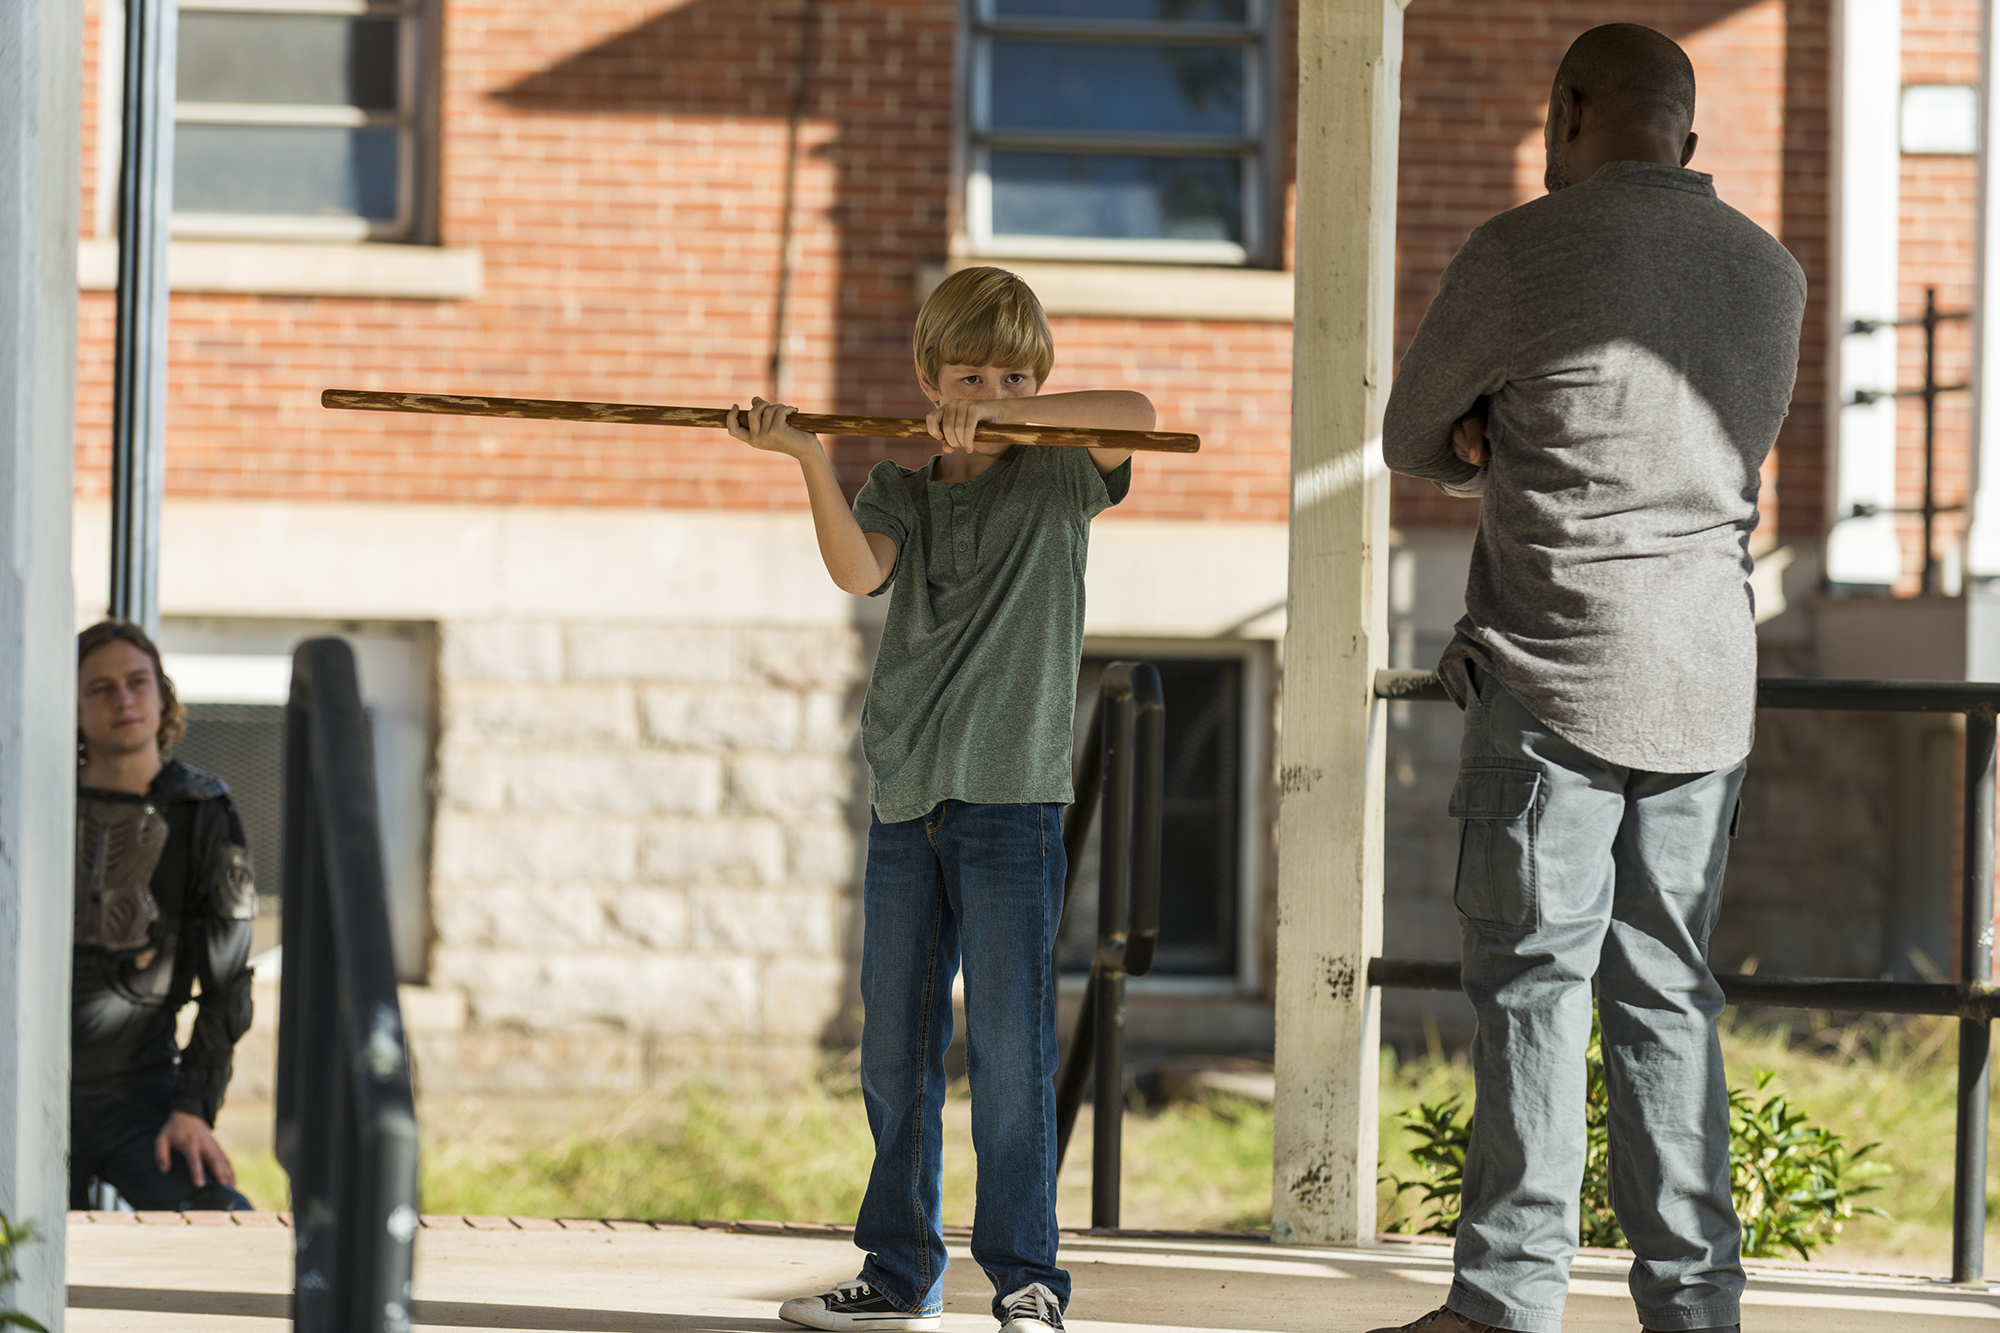 Lennie James as Morgan Jones, Macsen Lintz as Henry, Logan Miller as Benjamin - The Walking Dead, Season 7, Episode 13